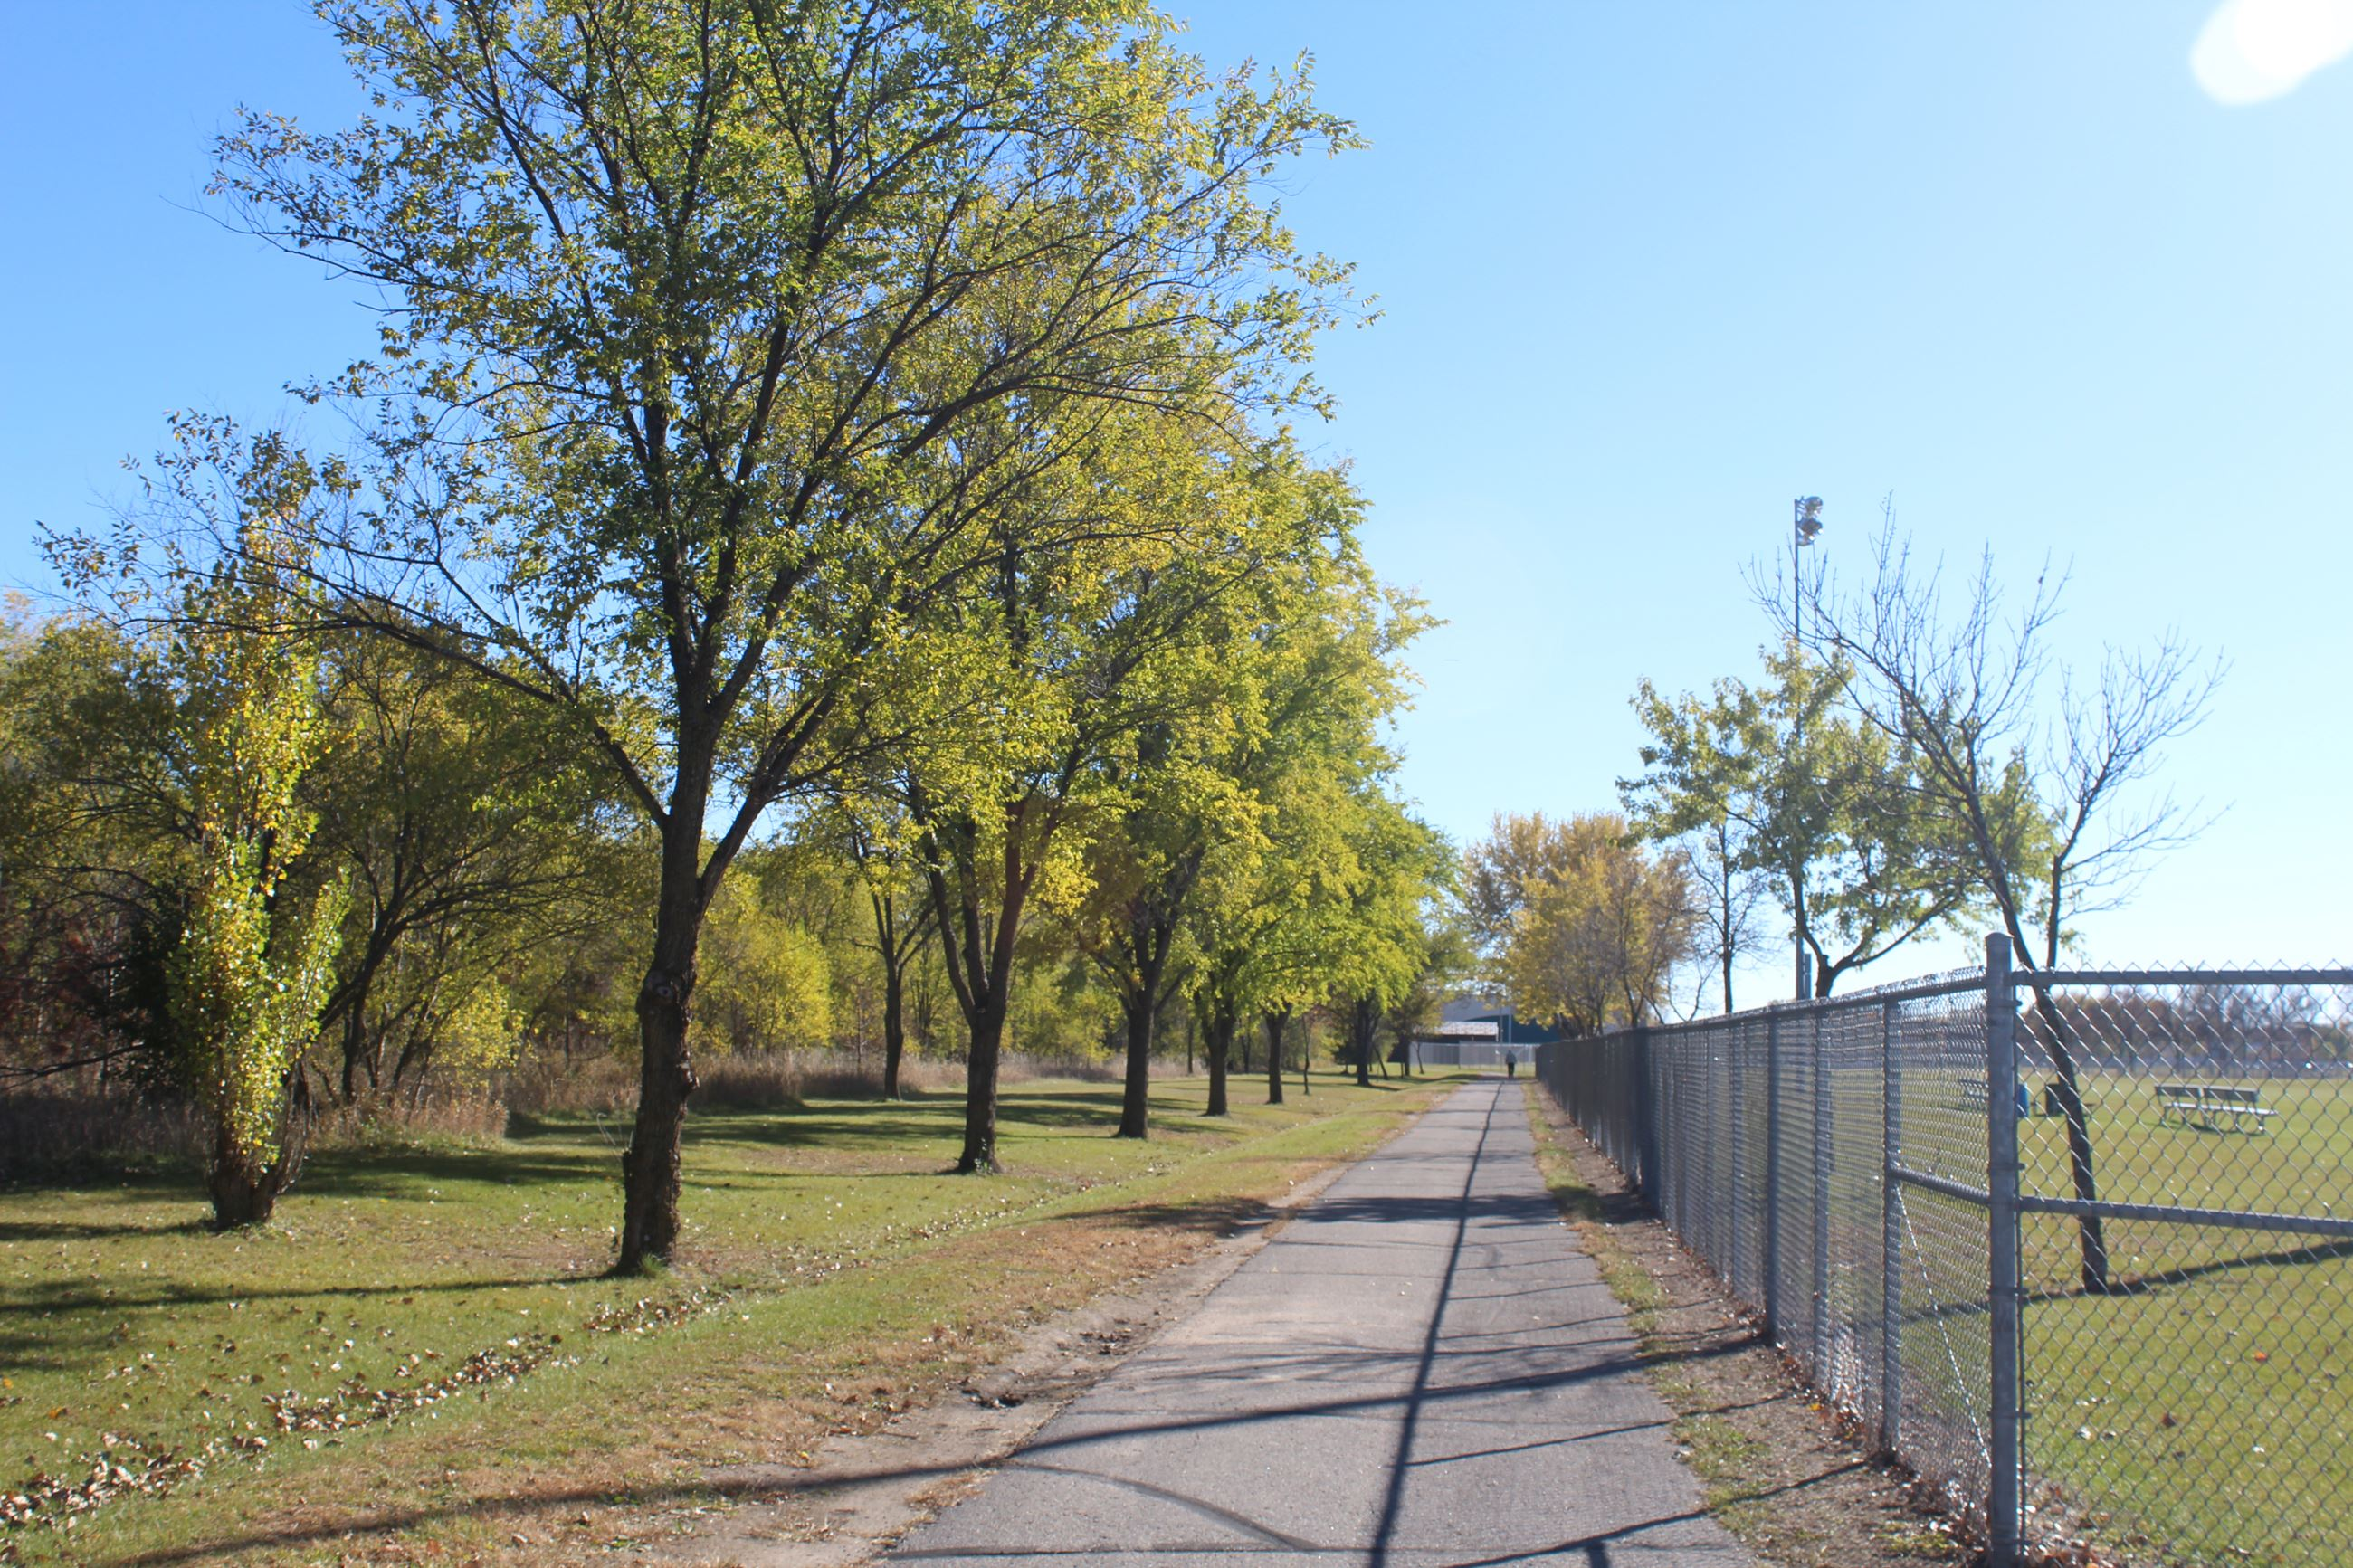 A view down the trail at the Whitney Sports Complex, lined up along the fence of the Whitney Dog Par